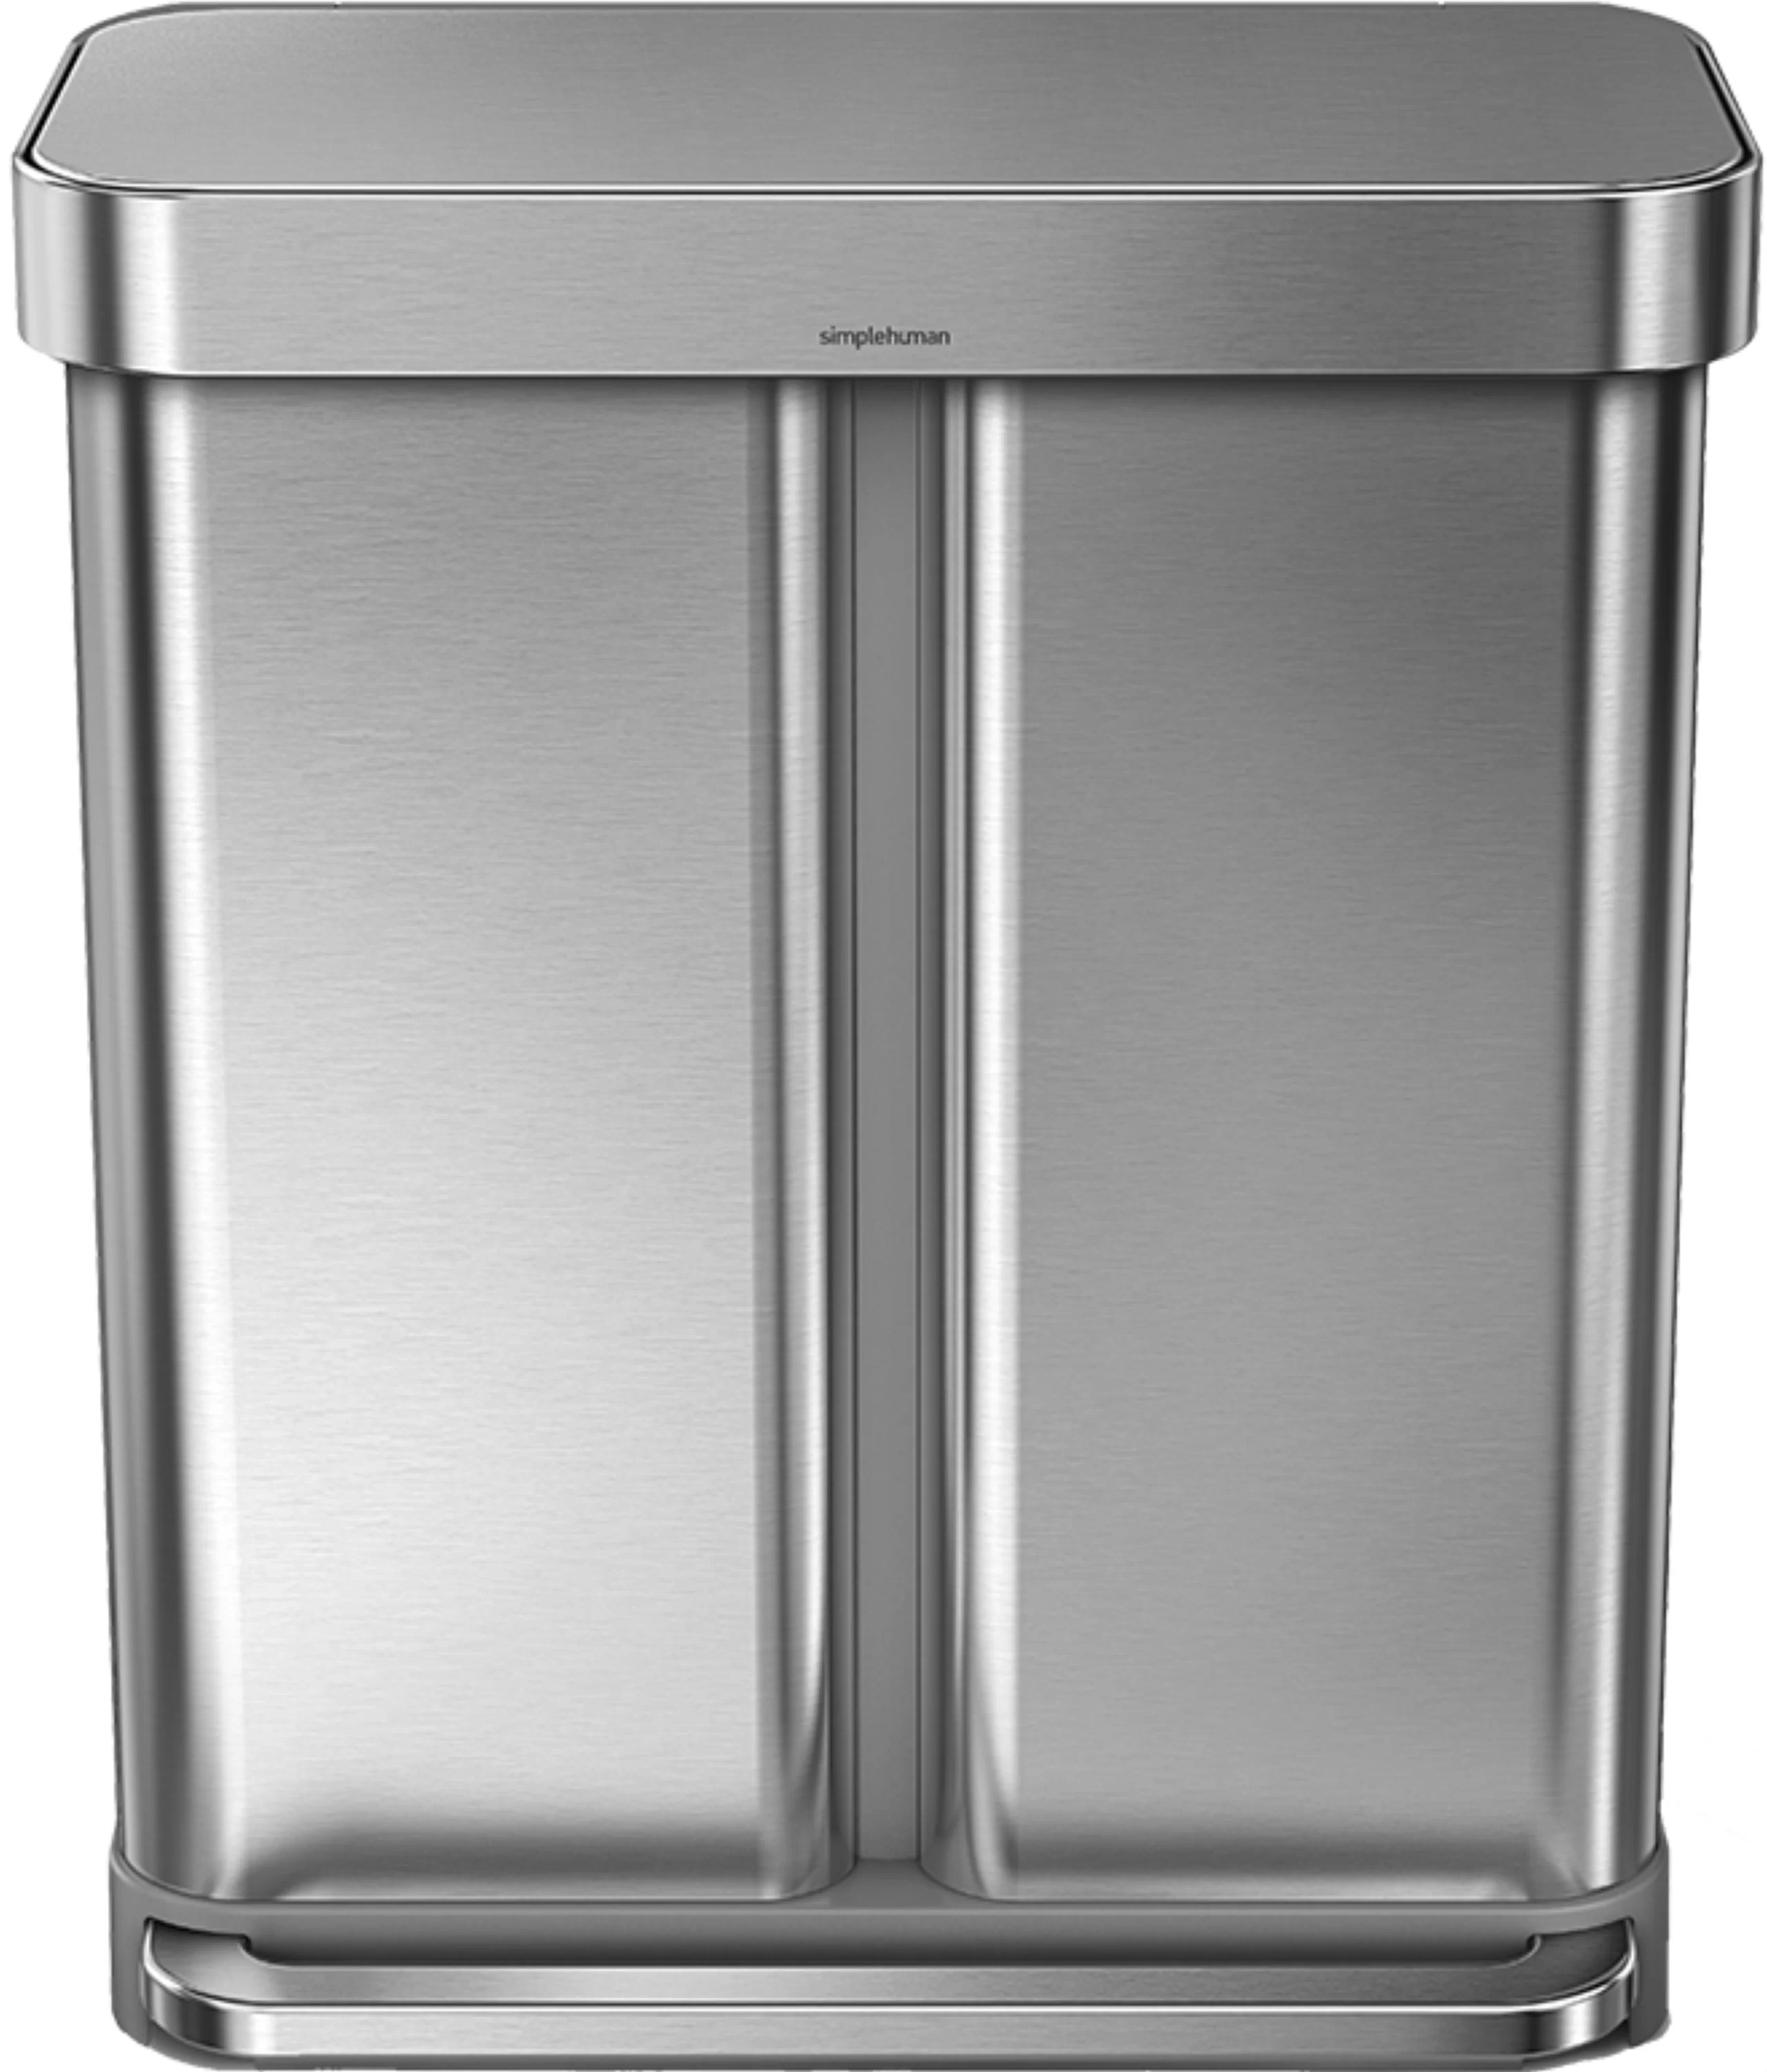 Stainless Steel Recycling Bins 15 Gallon Dual Compartment Rectangular Step Trash Can With Liner Pocket Recycler Stainless Steel